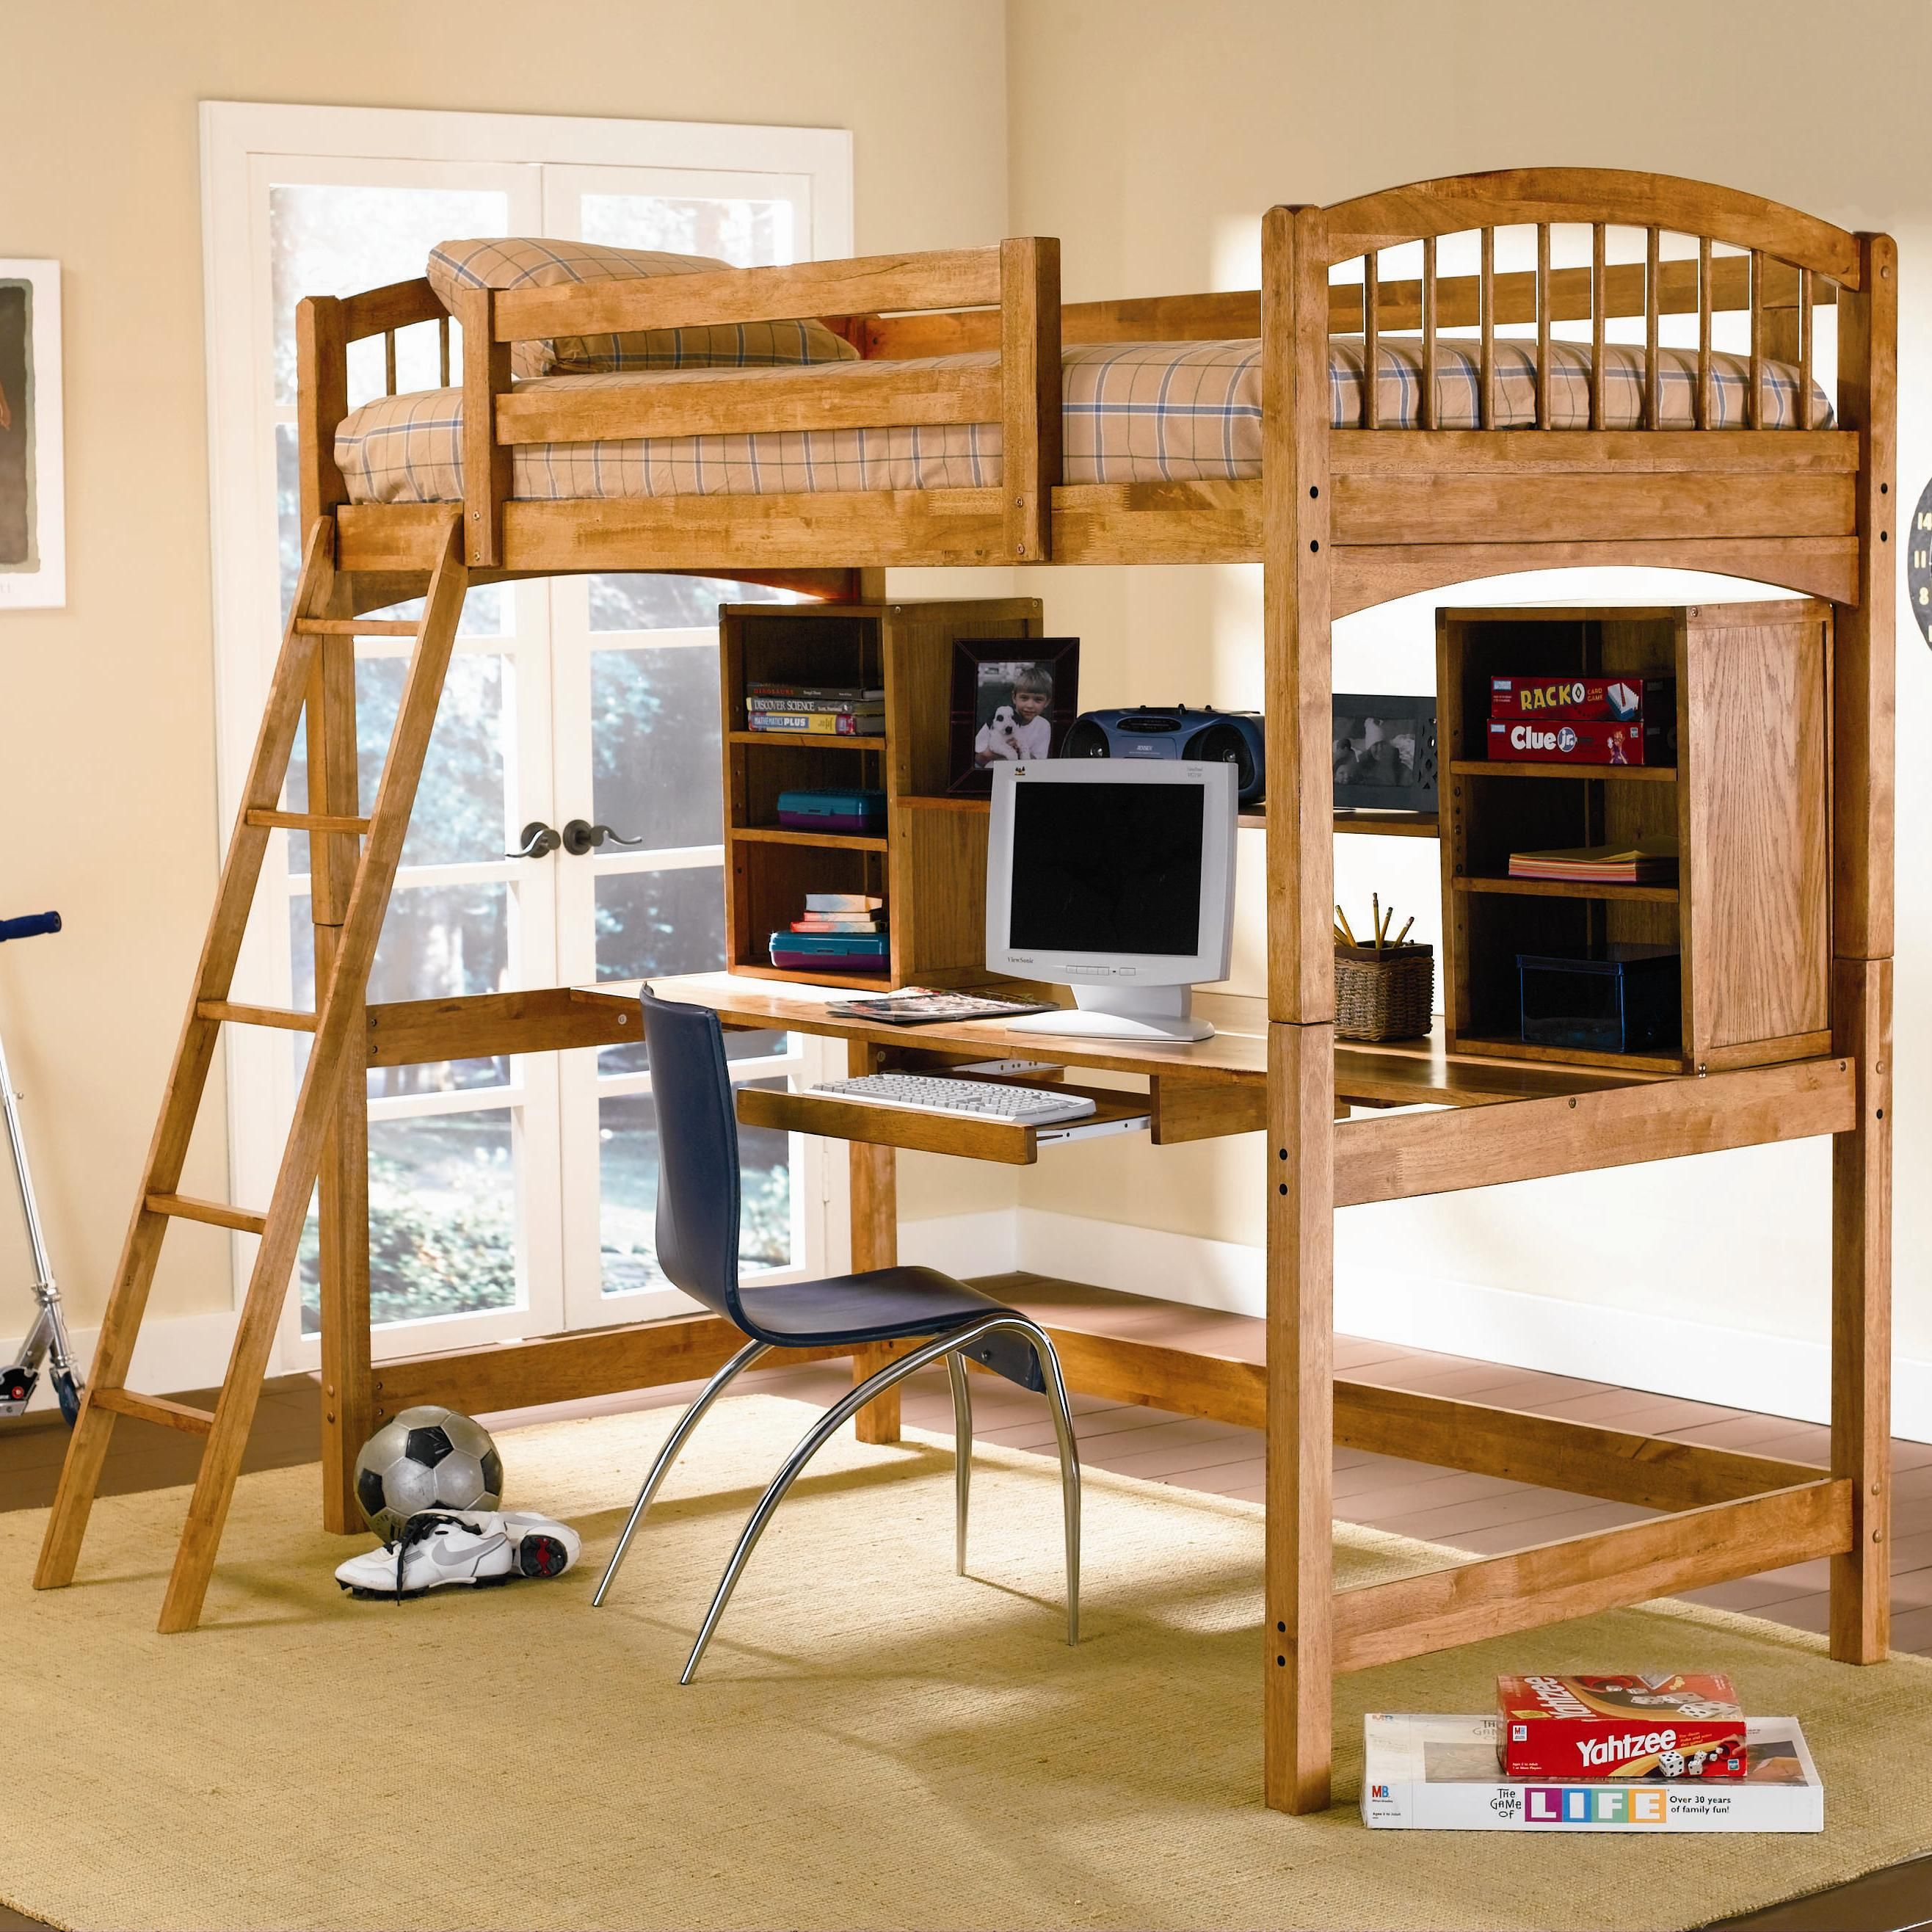 Brown loft bed wooden with chair and computer loft bed for Study bed plans